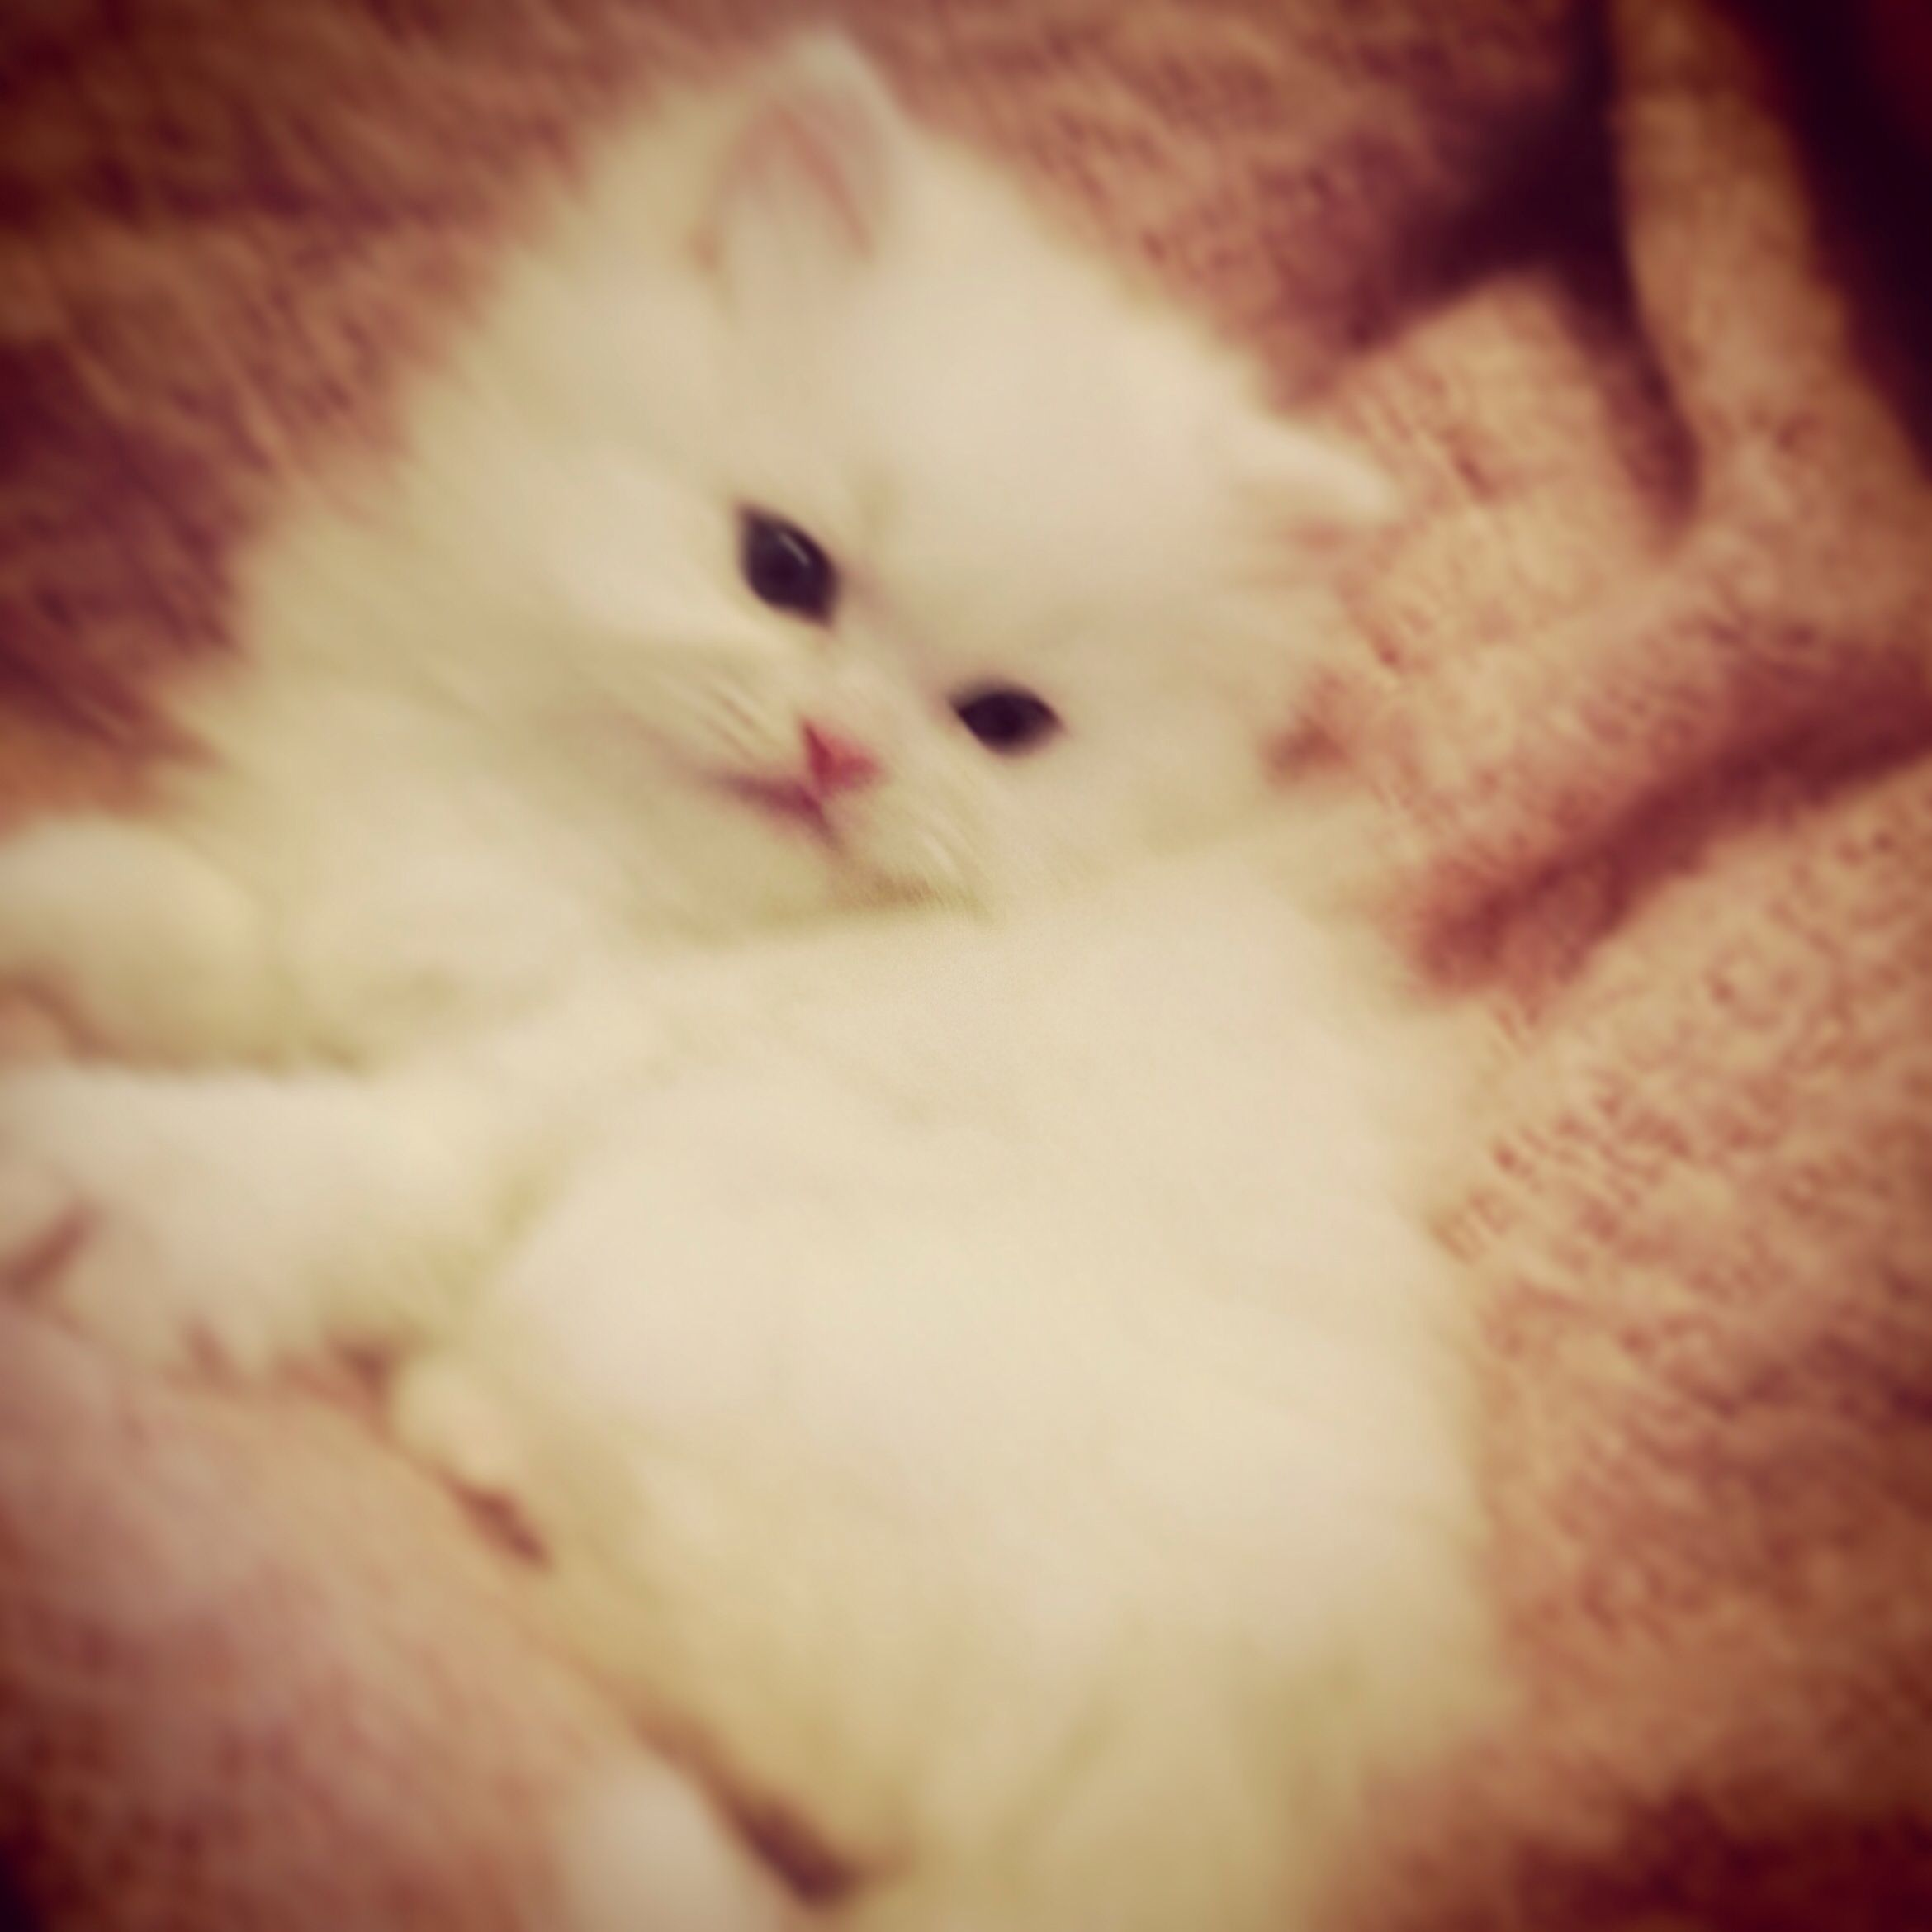 Pin By Kismet Kittens On Teacup Persian Kittens For Sale Persian Kittens Fluffy Kittens Persian Cats For Sale